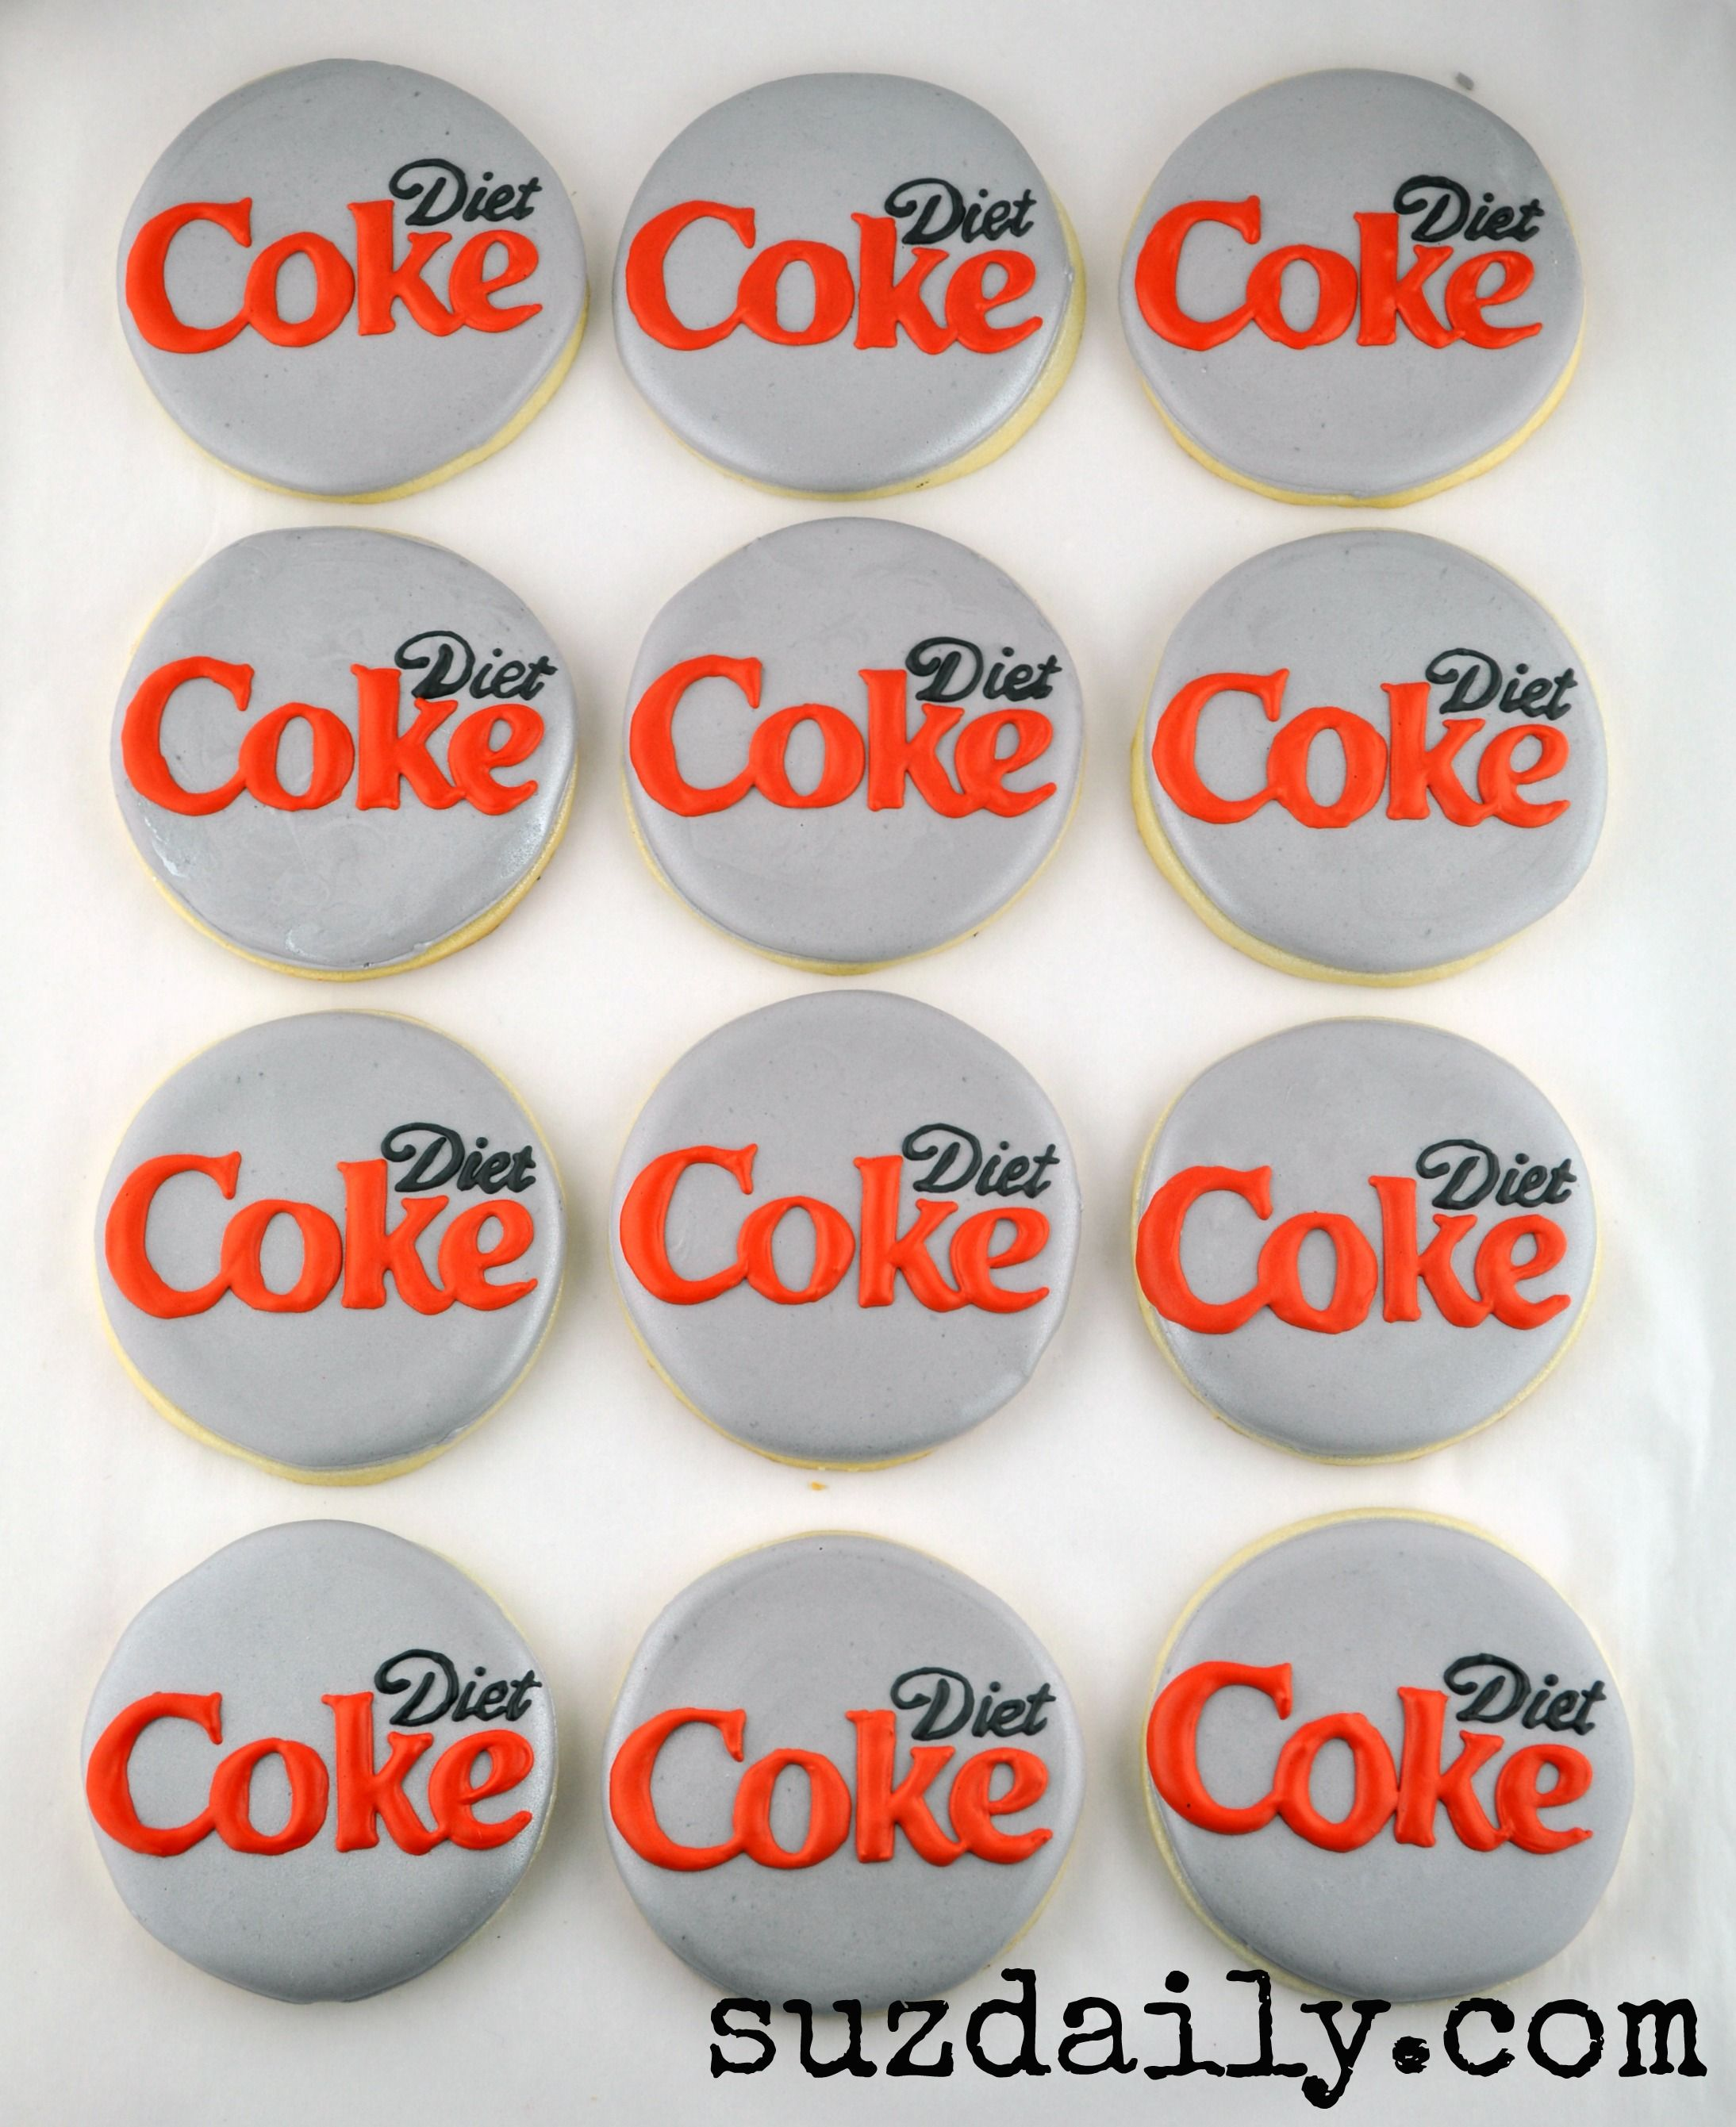 cookie recipes using diet coke